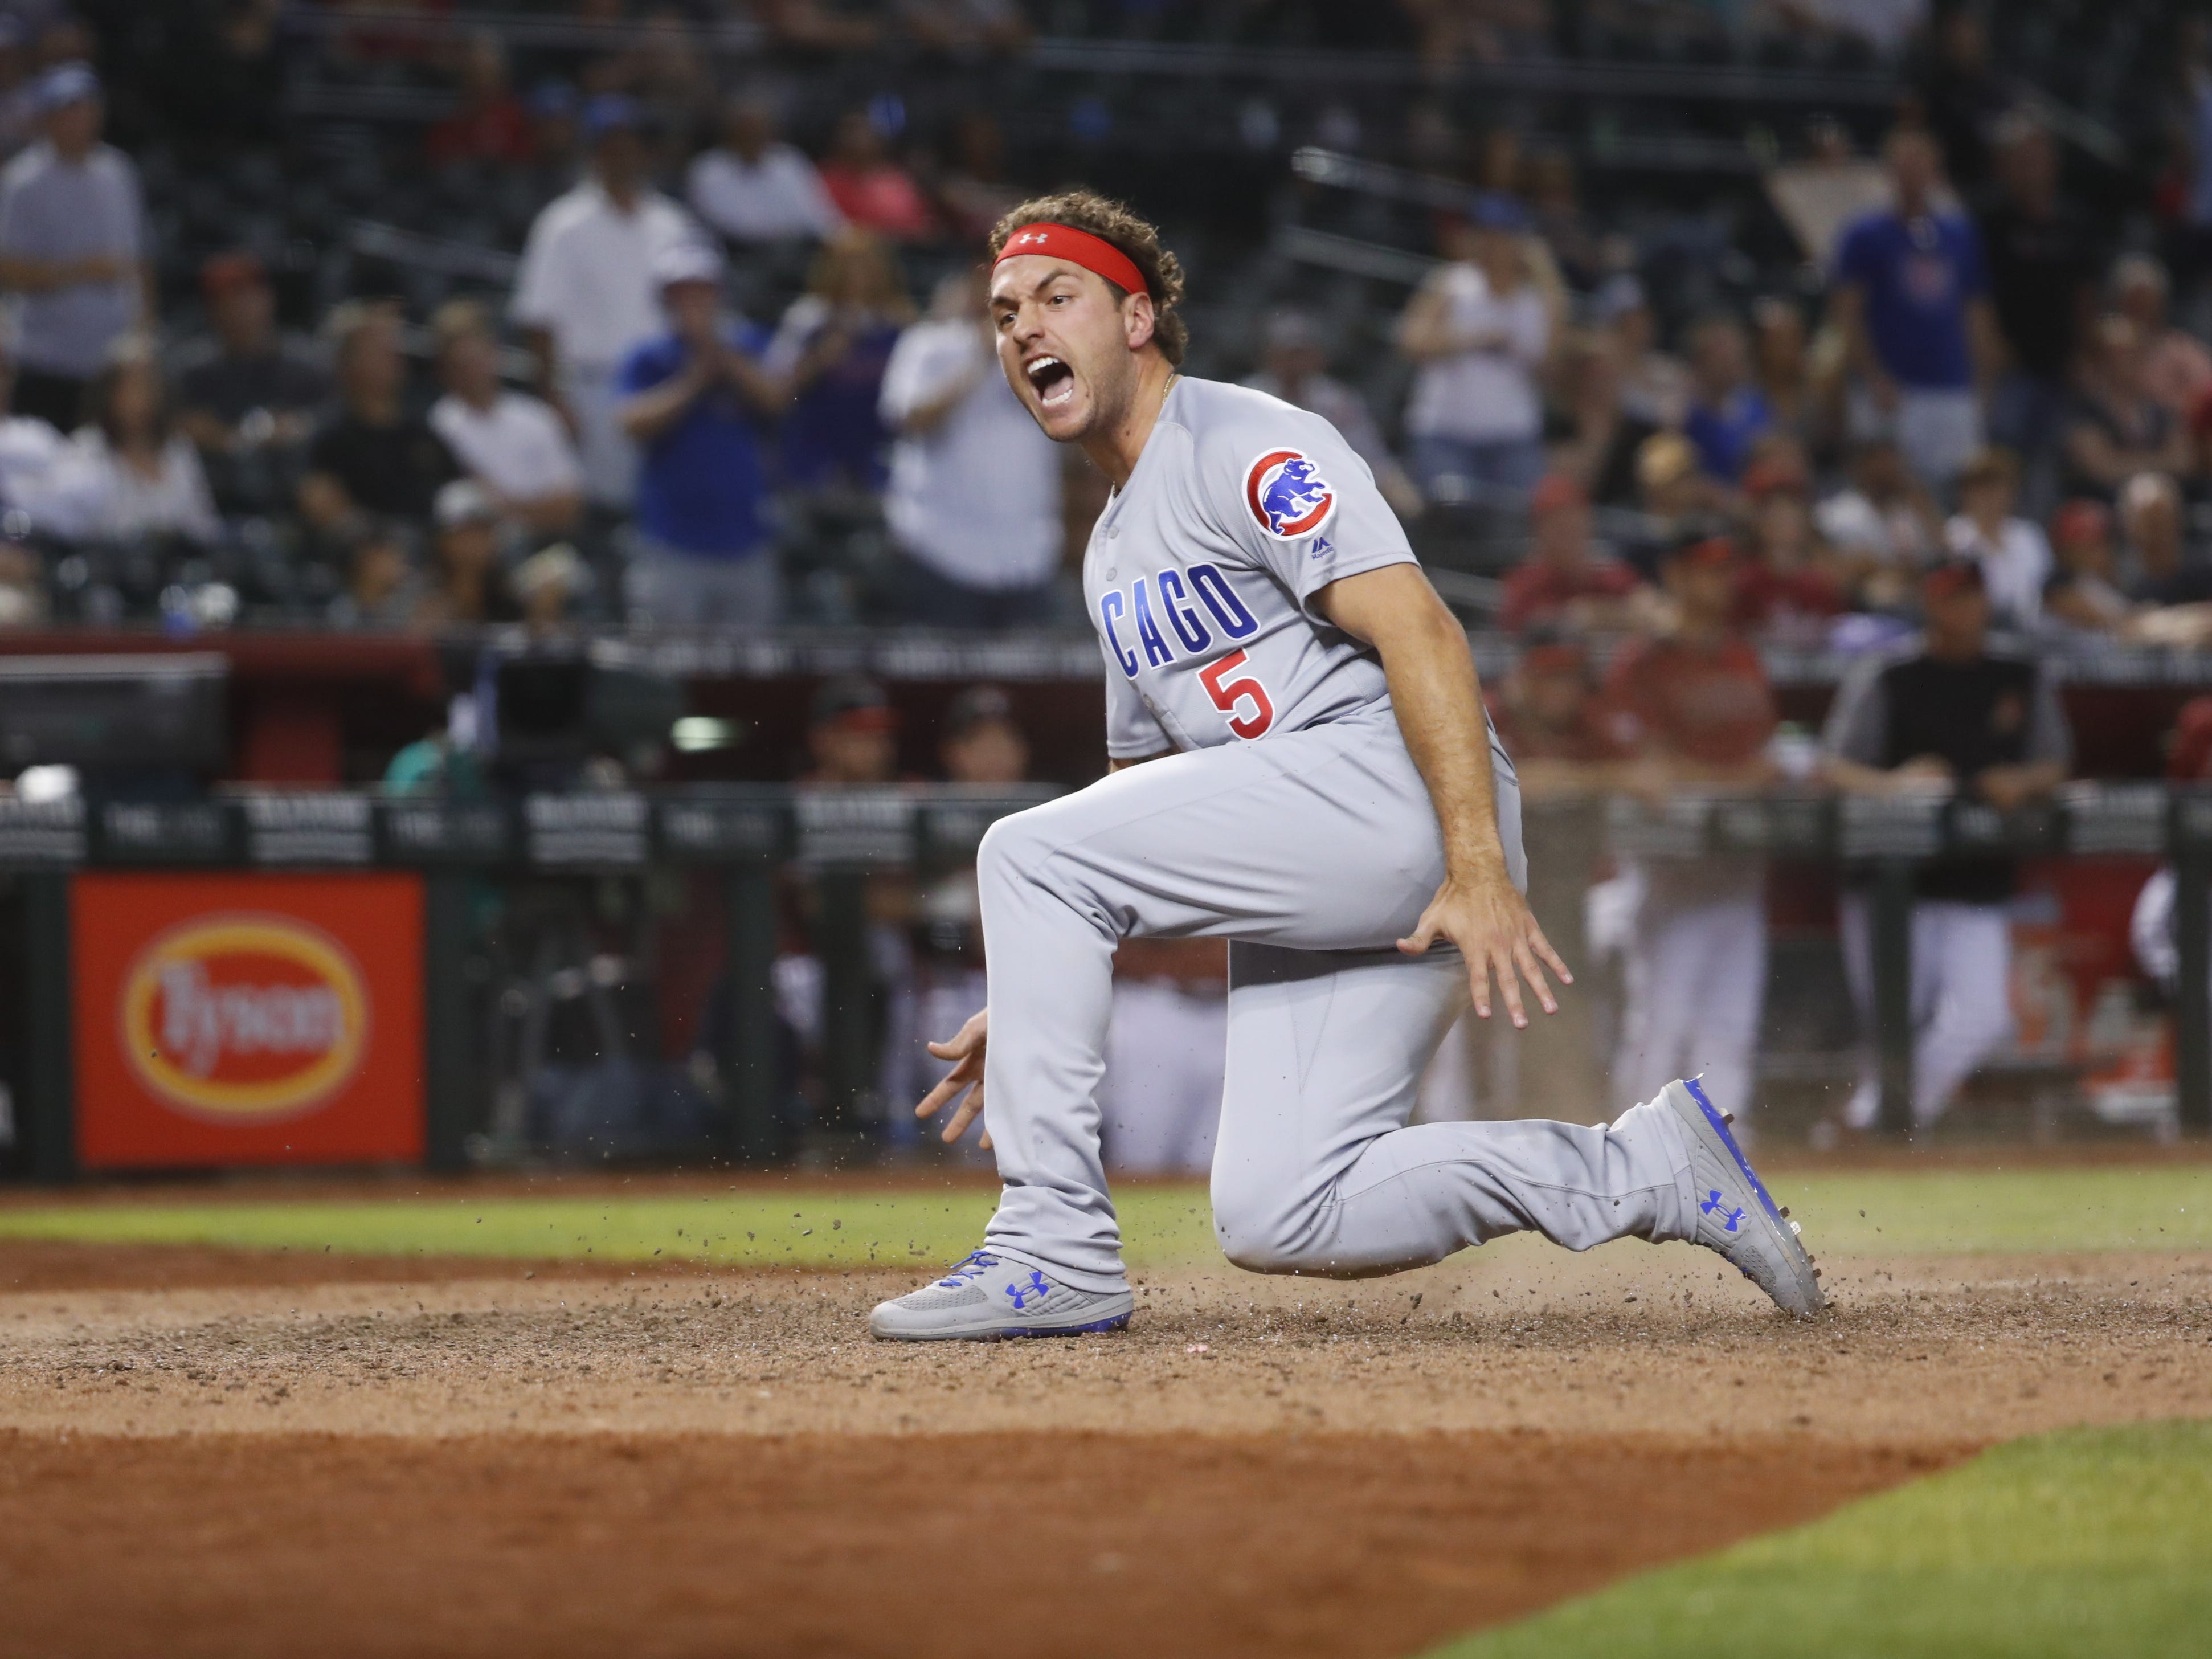 Cubs' Albert Almora Jr. (5) slides in scoring and celebrating against the Diamondbacks during the 15th inning at Chase Field in Phoenix, Ariz. on April 28, 2019.